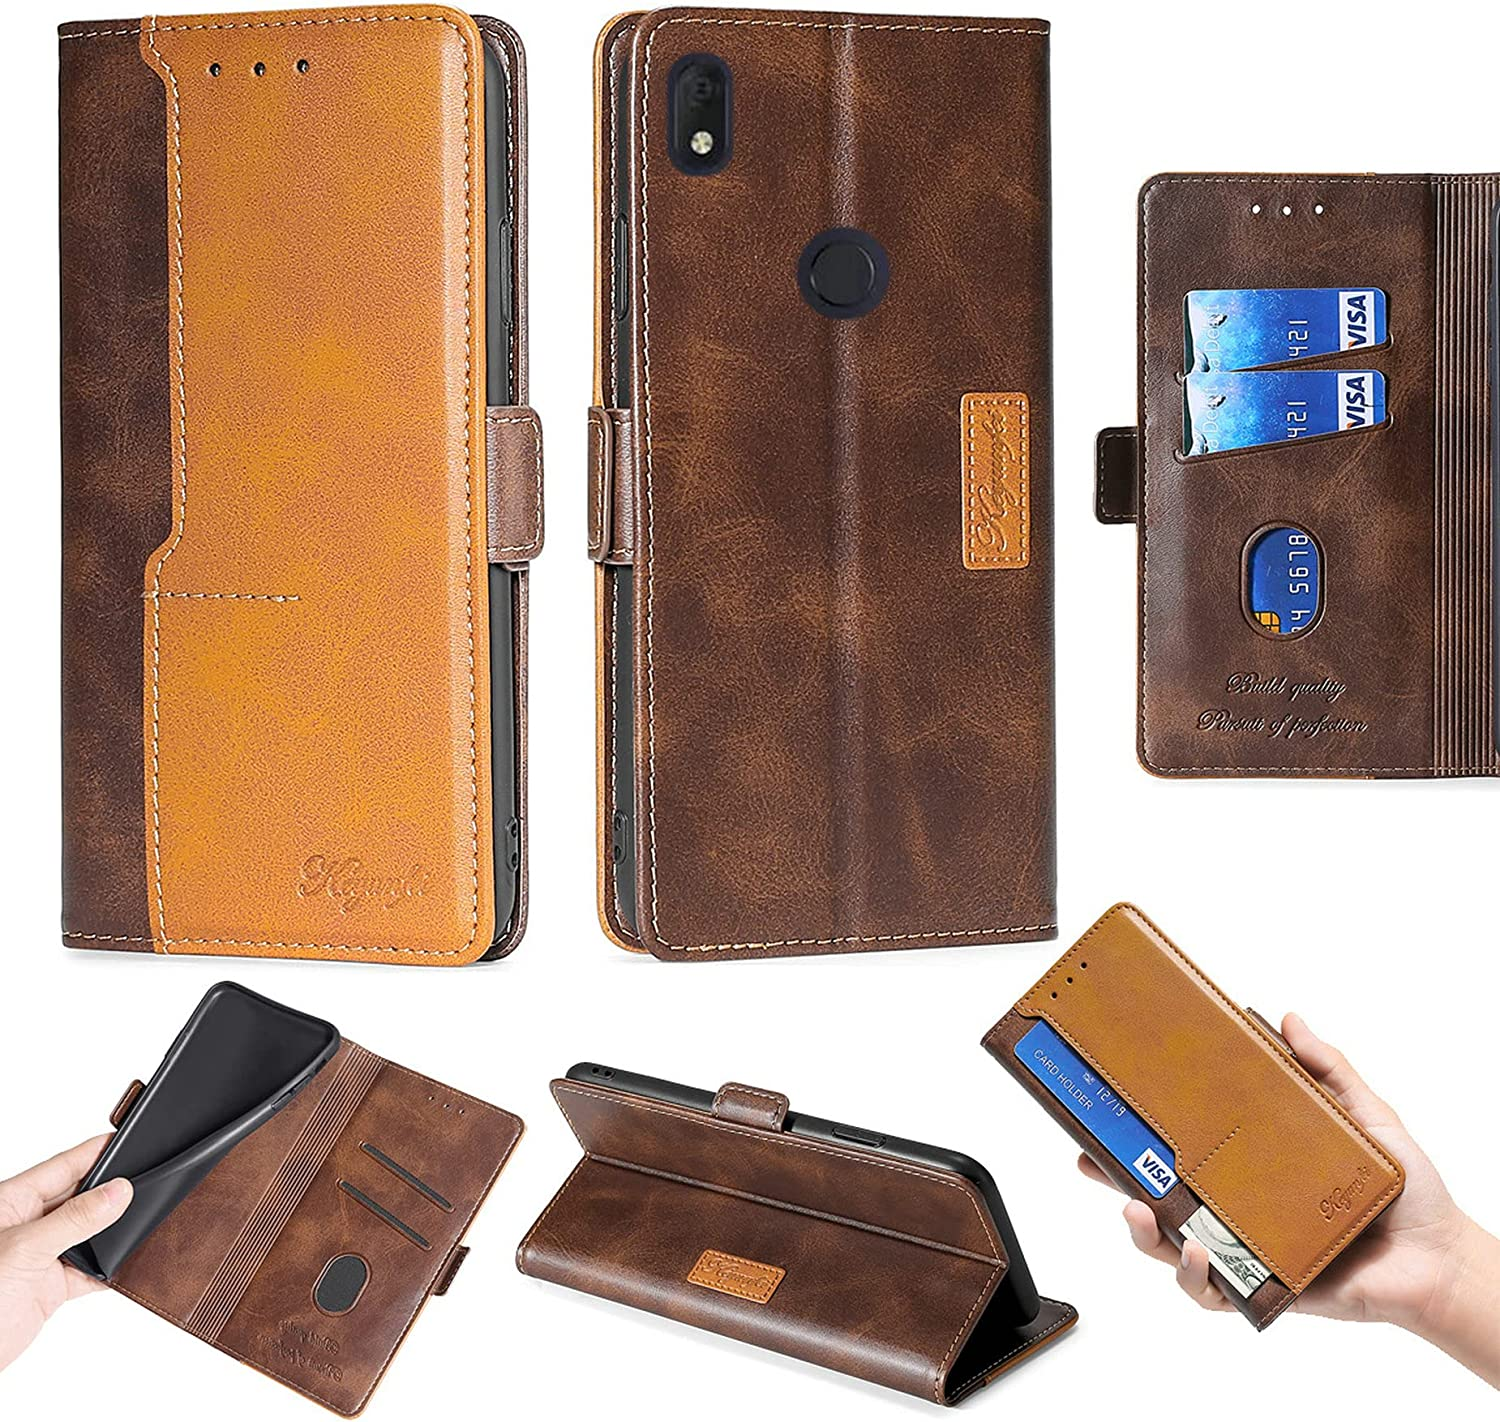 Oujietong Flip Case for Alcatel Axel ATT Phone Case Cover for Alcatel Lumos Cricket Wireless Phone Case Stand Cover Brown